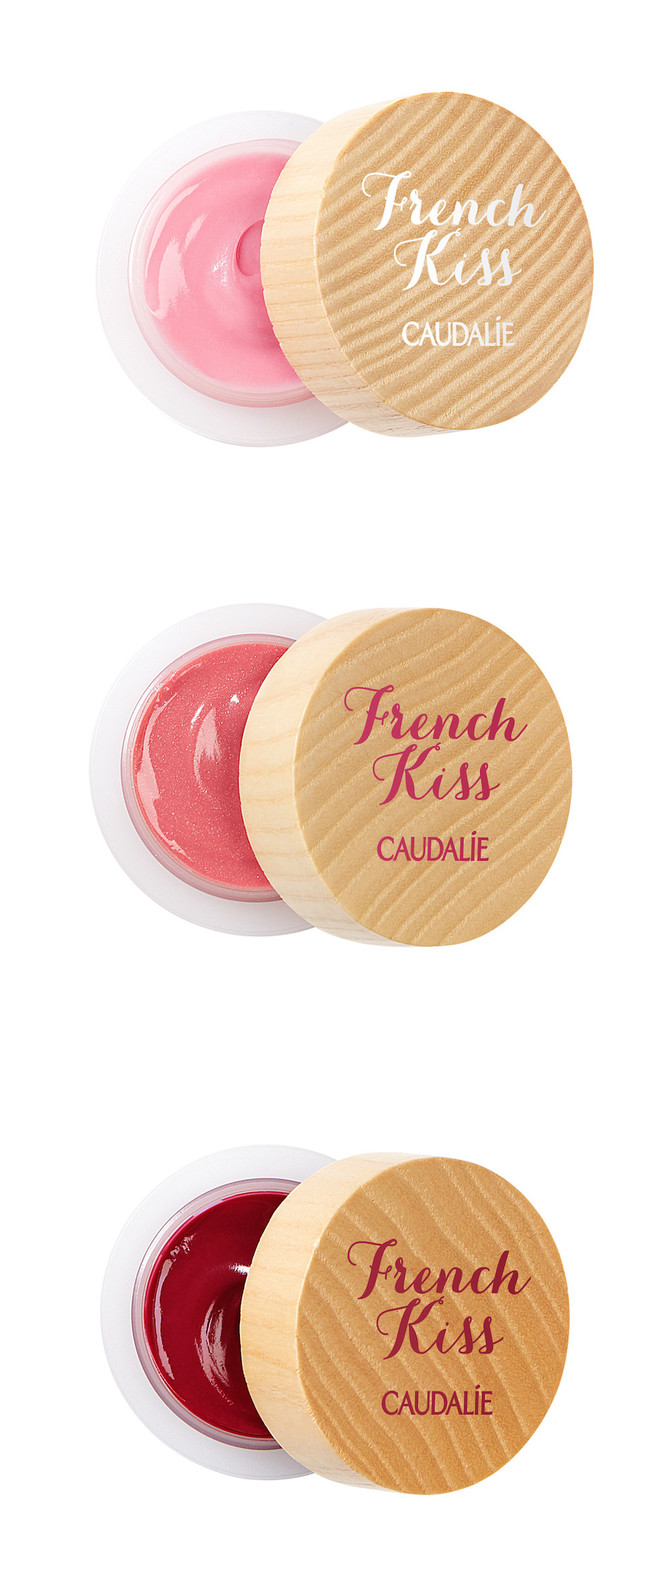 French Kiss Range